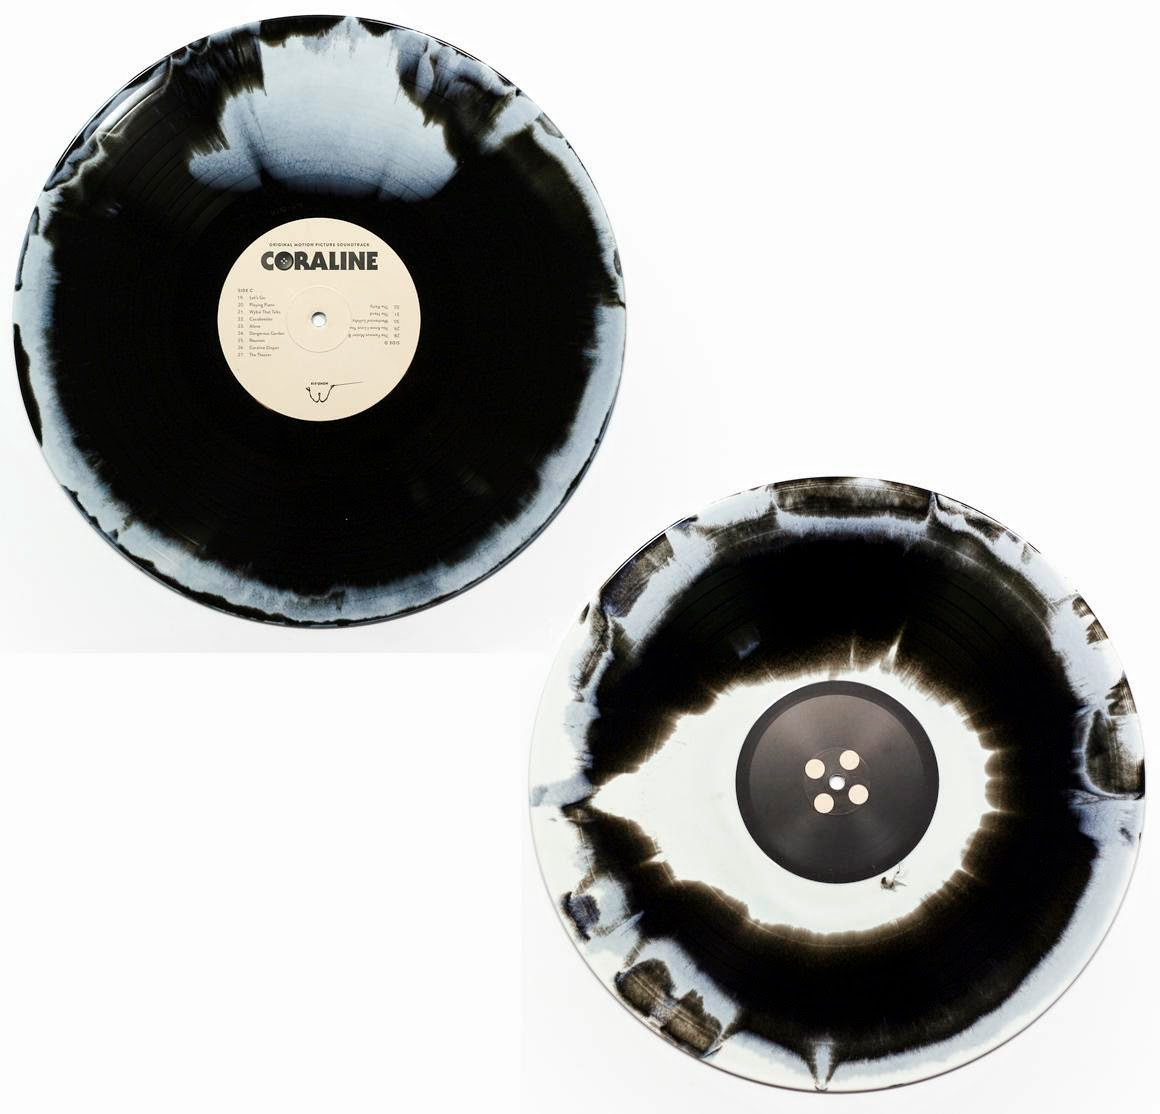 Coraline Soundtrack Black & White Swirl Vinyl Record Variant by Mondo